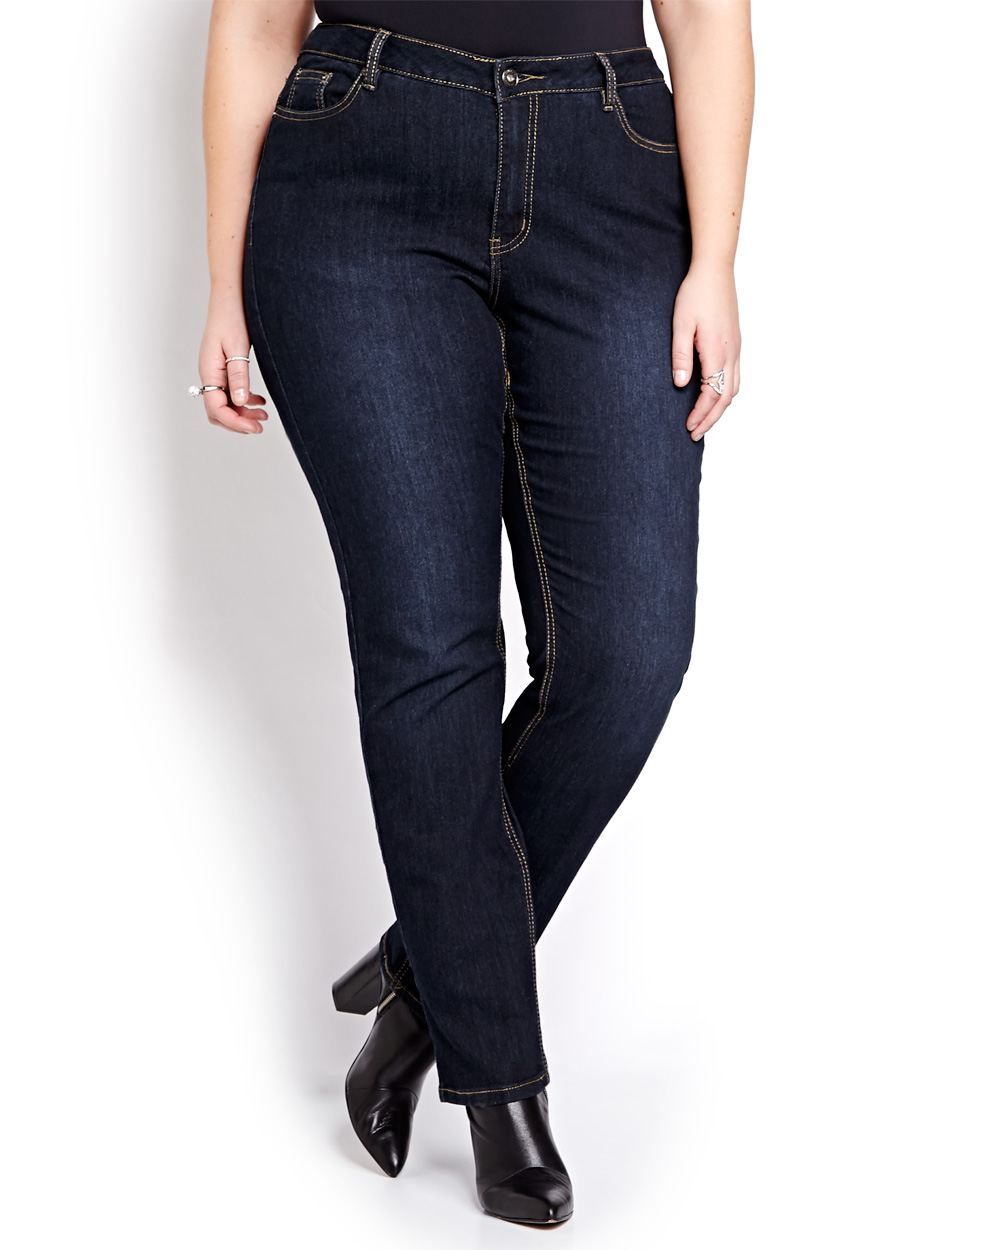 Must-have Love & Legend sculpting jeans combine stretch dark wash denim and a perfectly shaped fit that sits at the waist, gently curves from waist to hip with a slim leg and straight leg opening. Plus size, button fly, 5 pocket. 33 inch inseam. Flattering, chic and versatile!